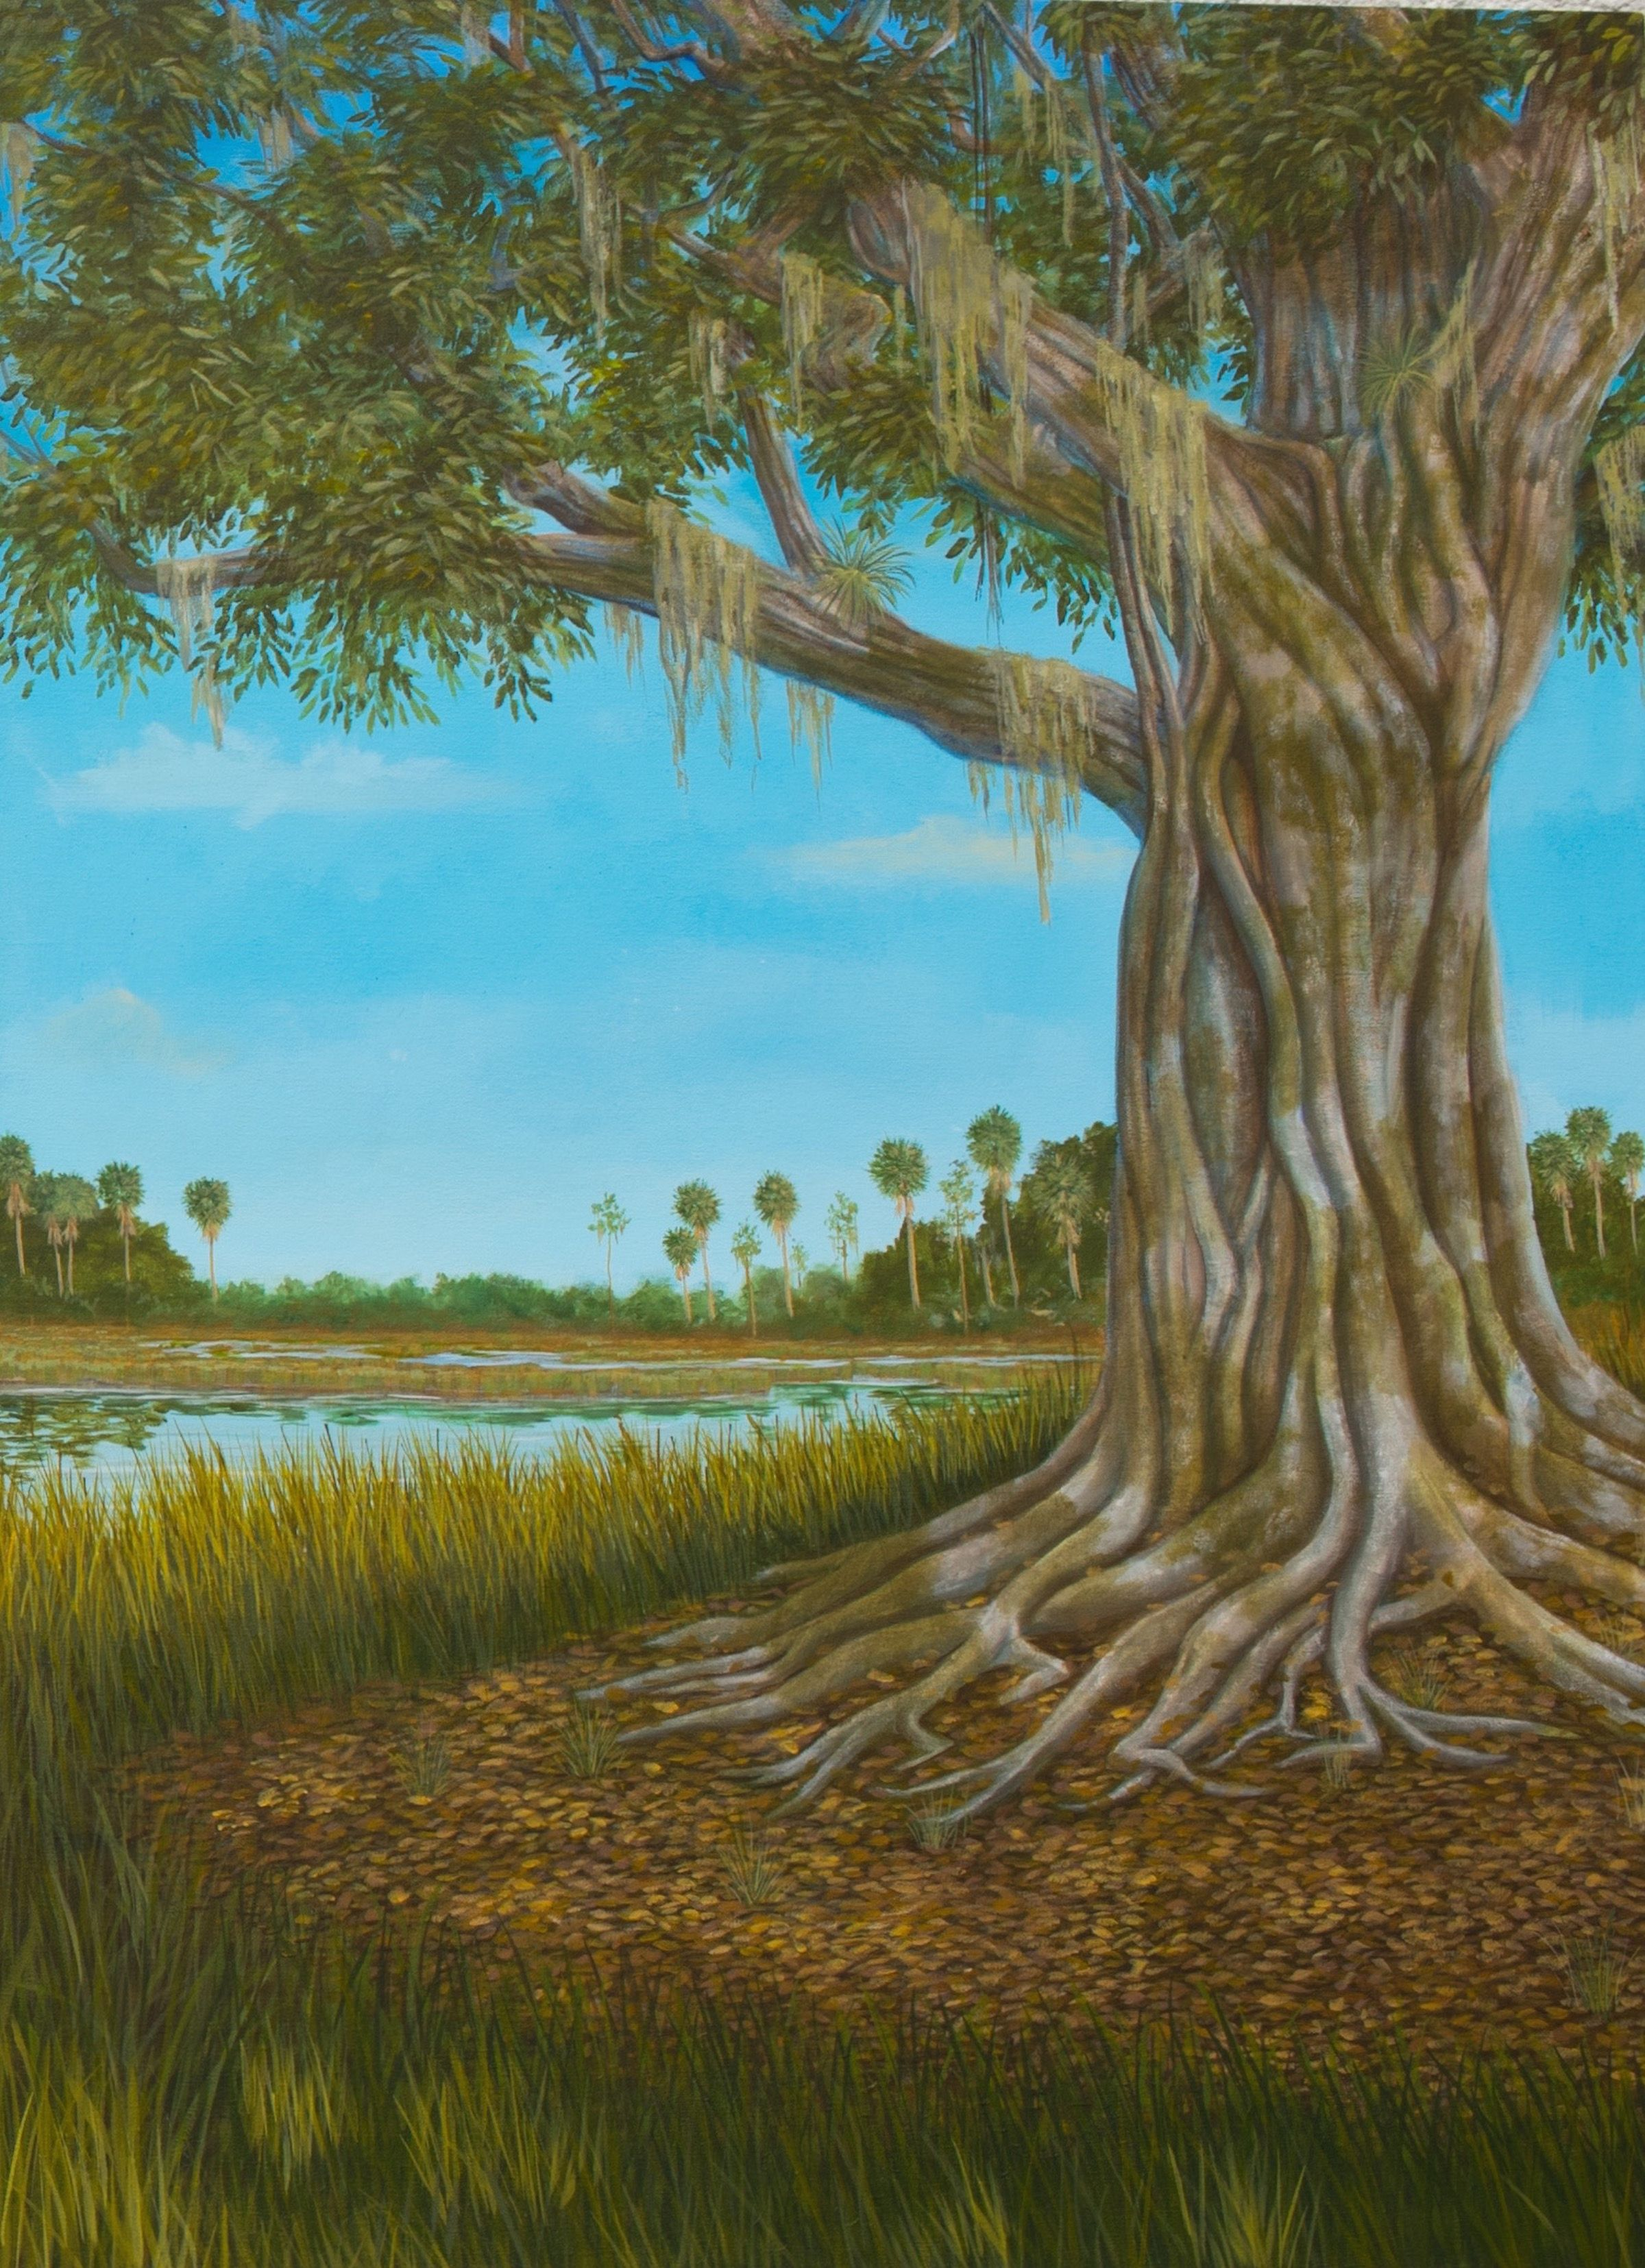 3rd panel of an Everglades themed triptych